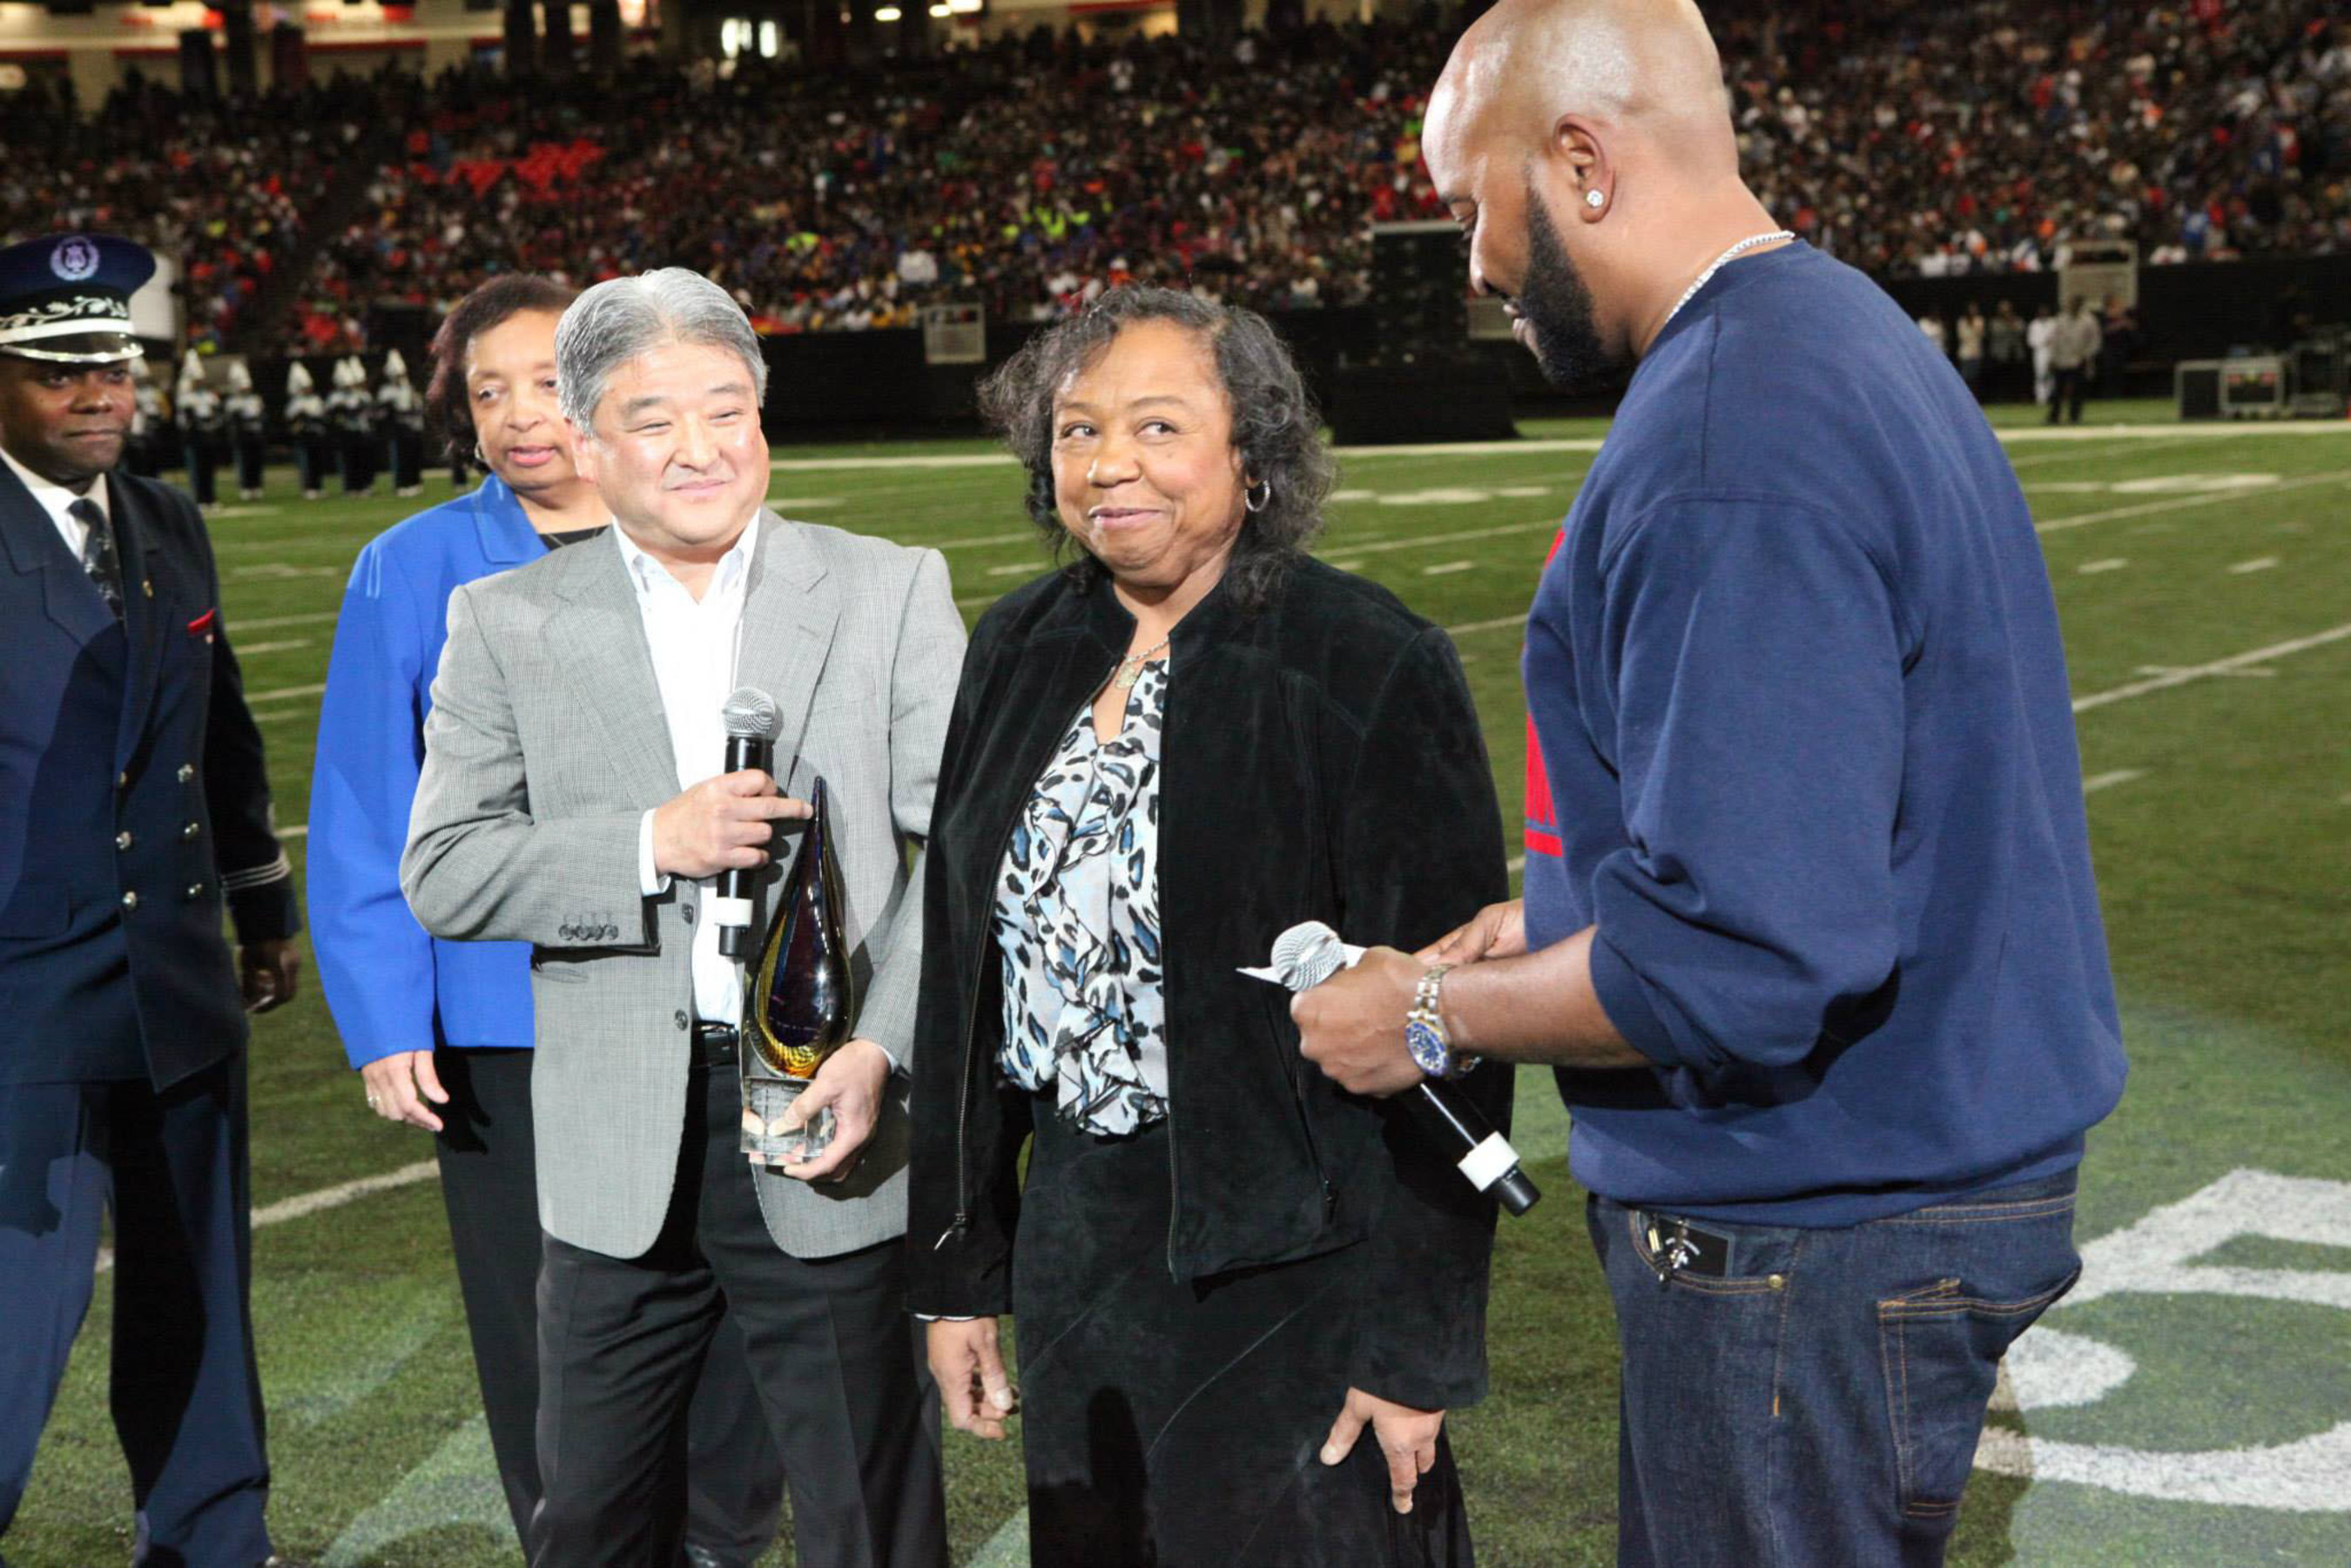 Ms. Audrey Stradford was named the first-ever Honda Power of Dreams Award honoree for her lifelong dedication to serving HBCU students and the Tennessee State University community, and was awarded a brand new 2015 Honda CRV at the 13th annual Honda Battle of the Bands Invitational Showcase on Jan. 24, 2015.